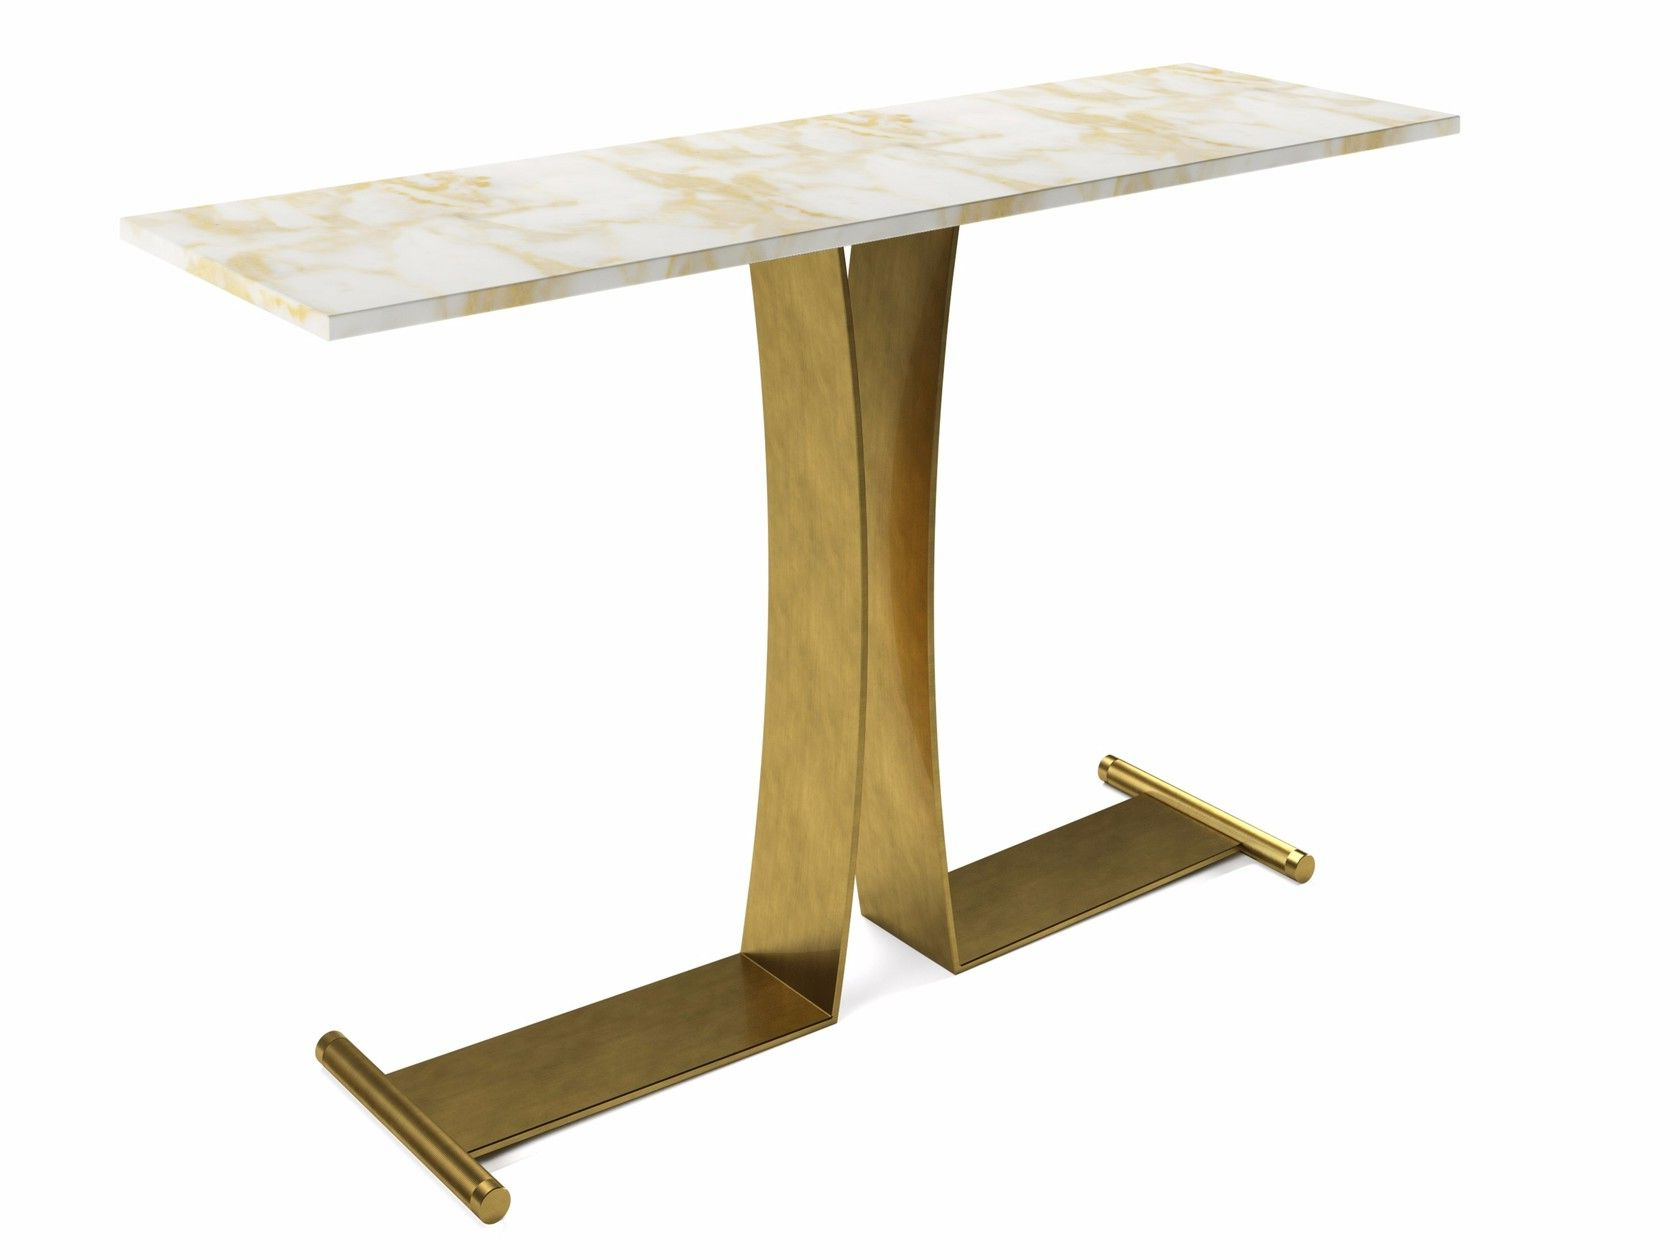 Guy | Console Table In 2018 | 1gja Console Tables | Pinterest With Regard To Parsons Concrete Top & Elm Base 48x16 Console Tables (View 12 of 20)